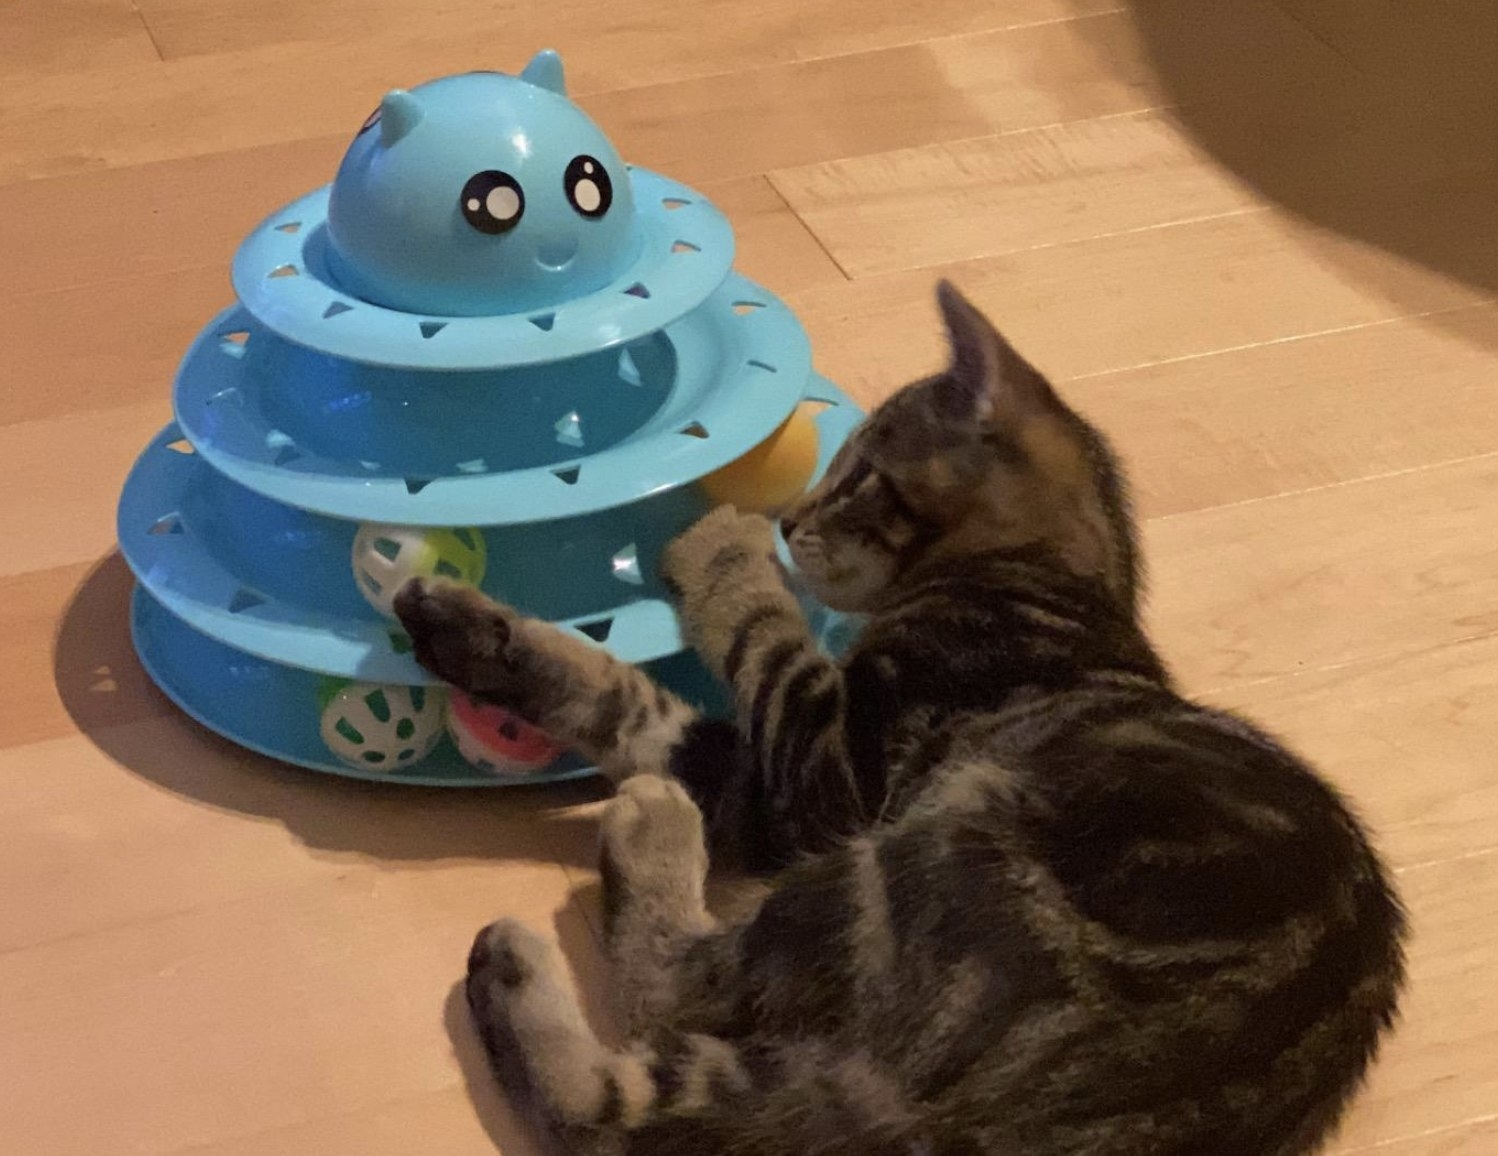 a striped cat playing with a blue tiered roller ball toy